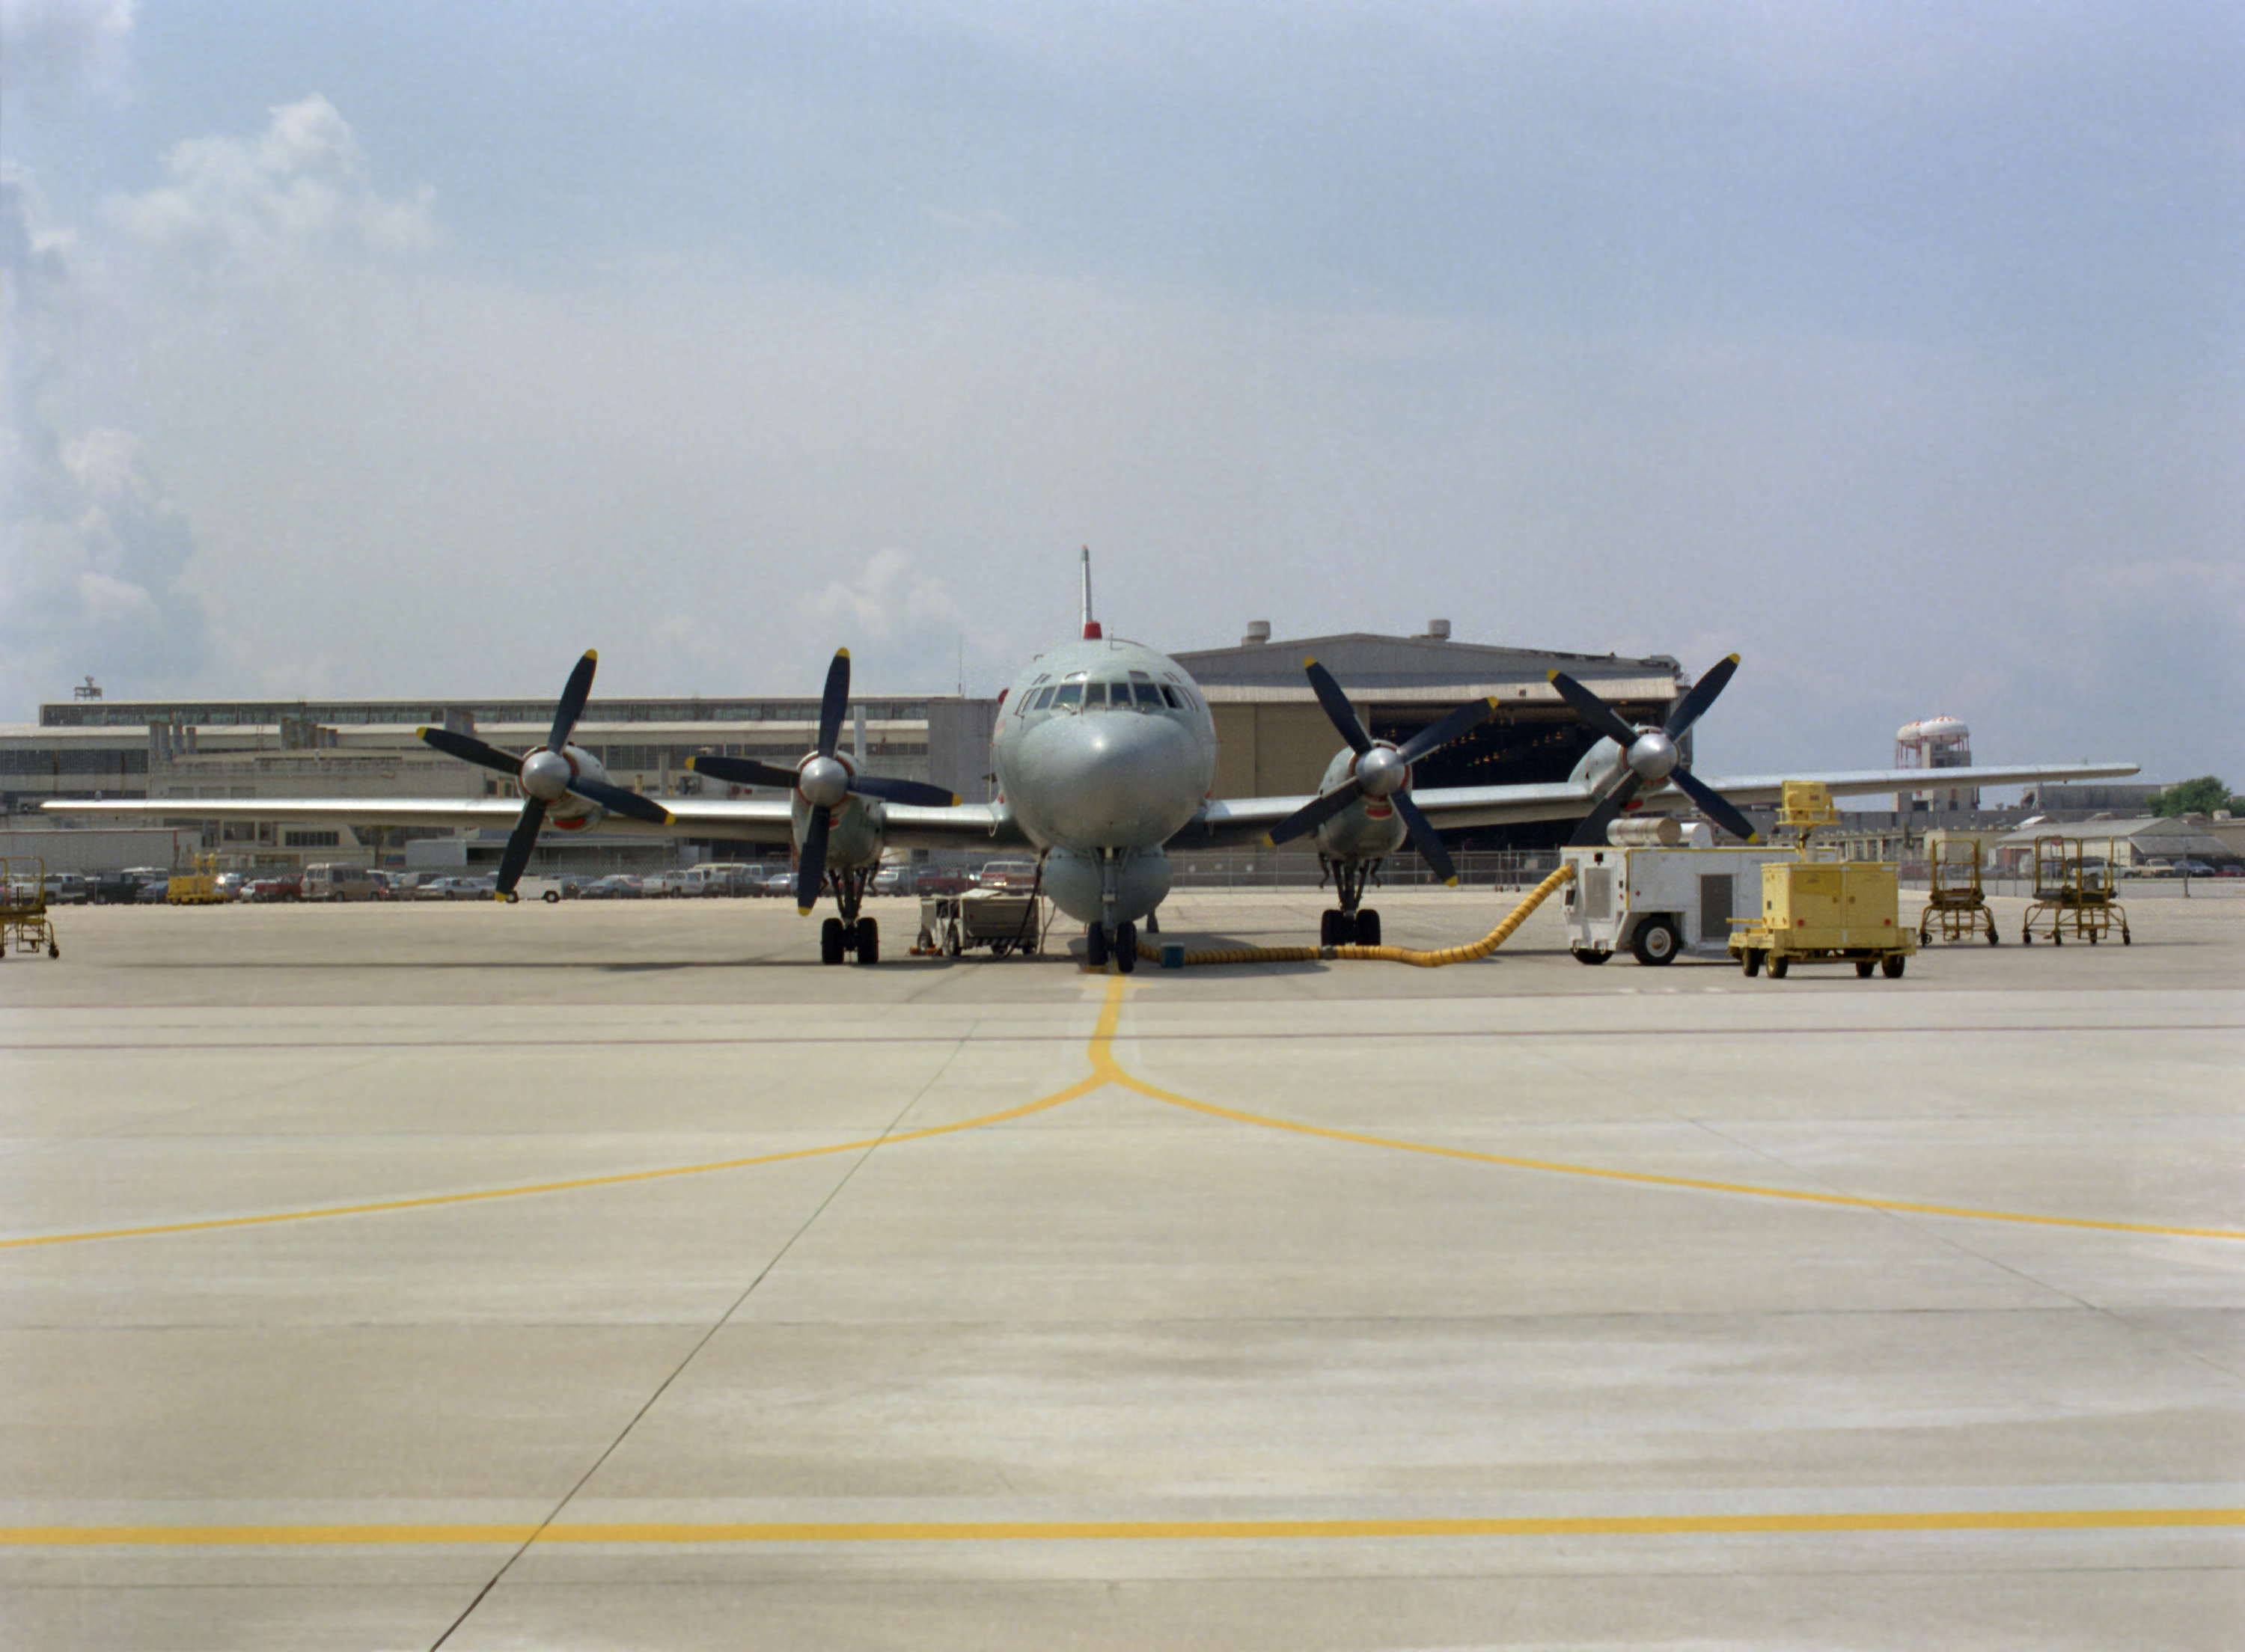 Head on view of a Russian IL-38 May anti-submarine warfare (ASW) patrol aircraft parked on the tarmac